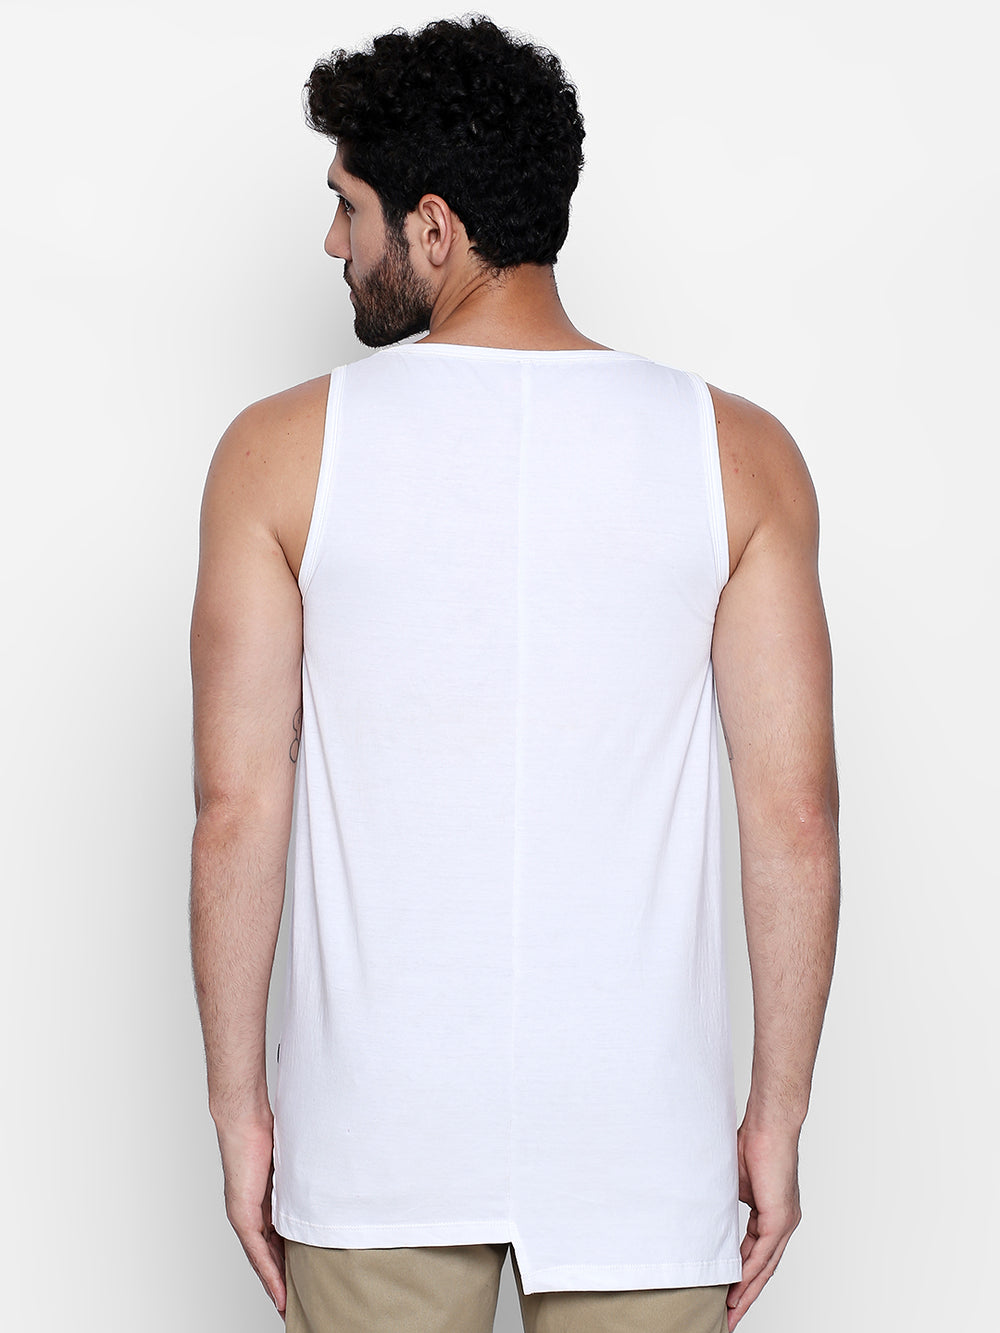 Disrupt Graphic Print White Cotton Vest